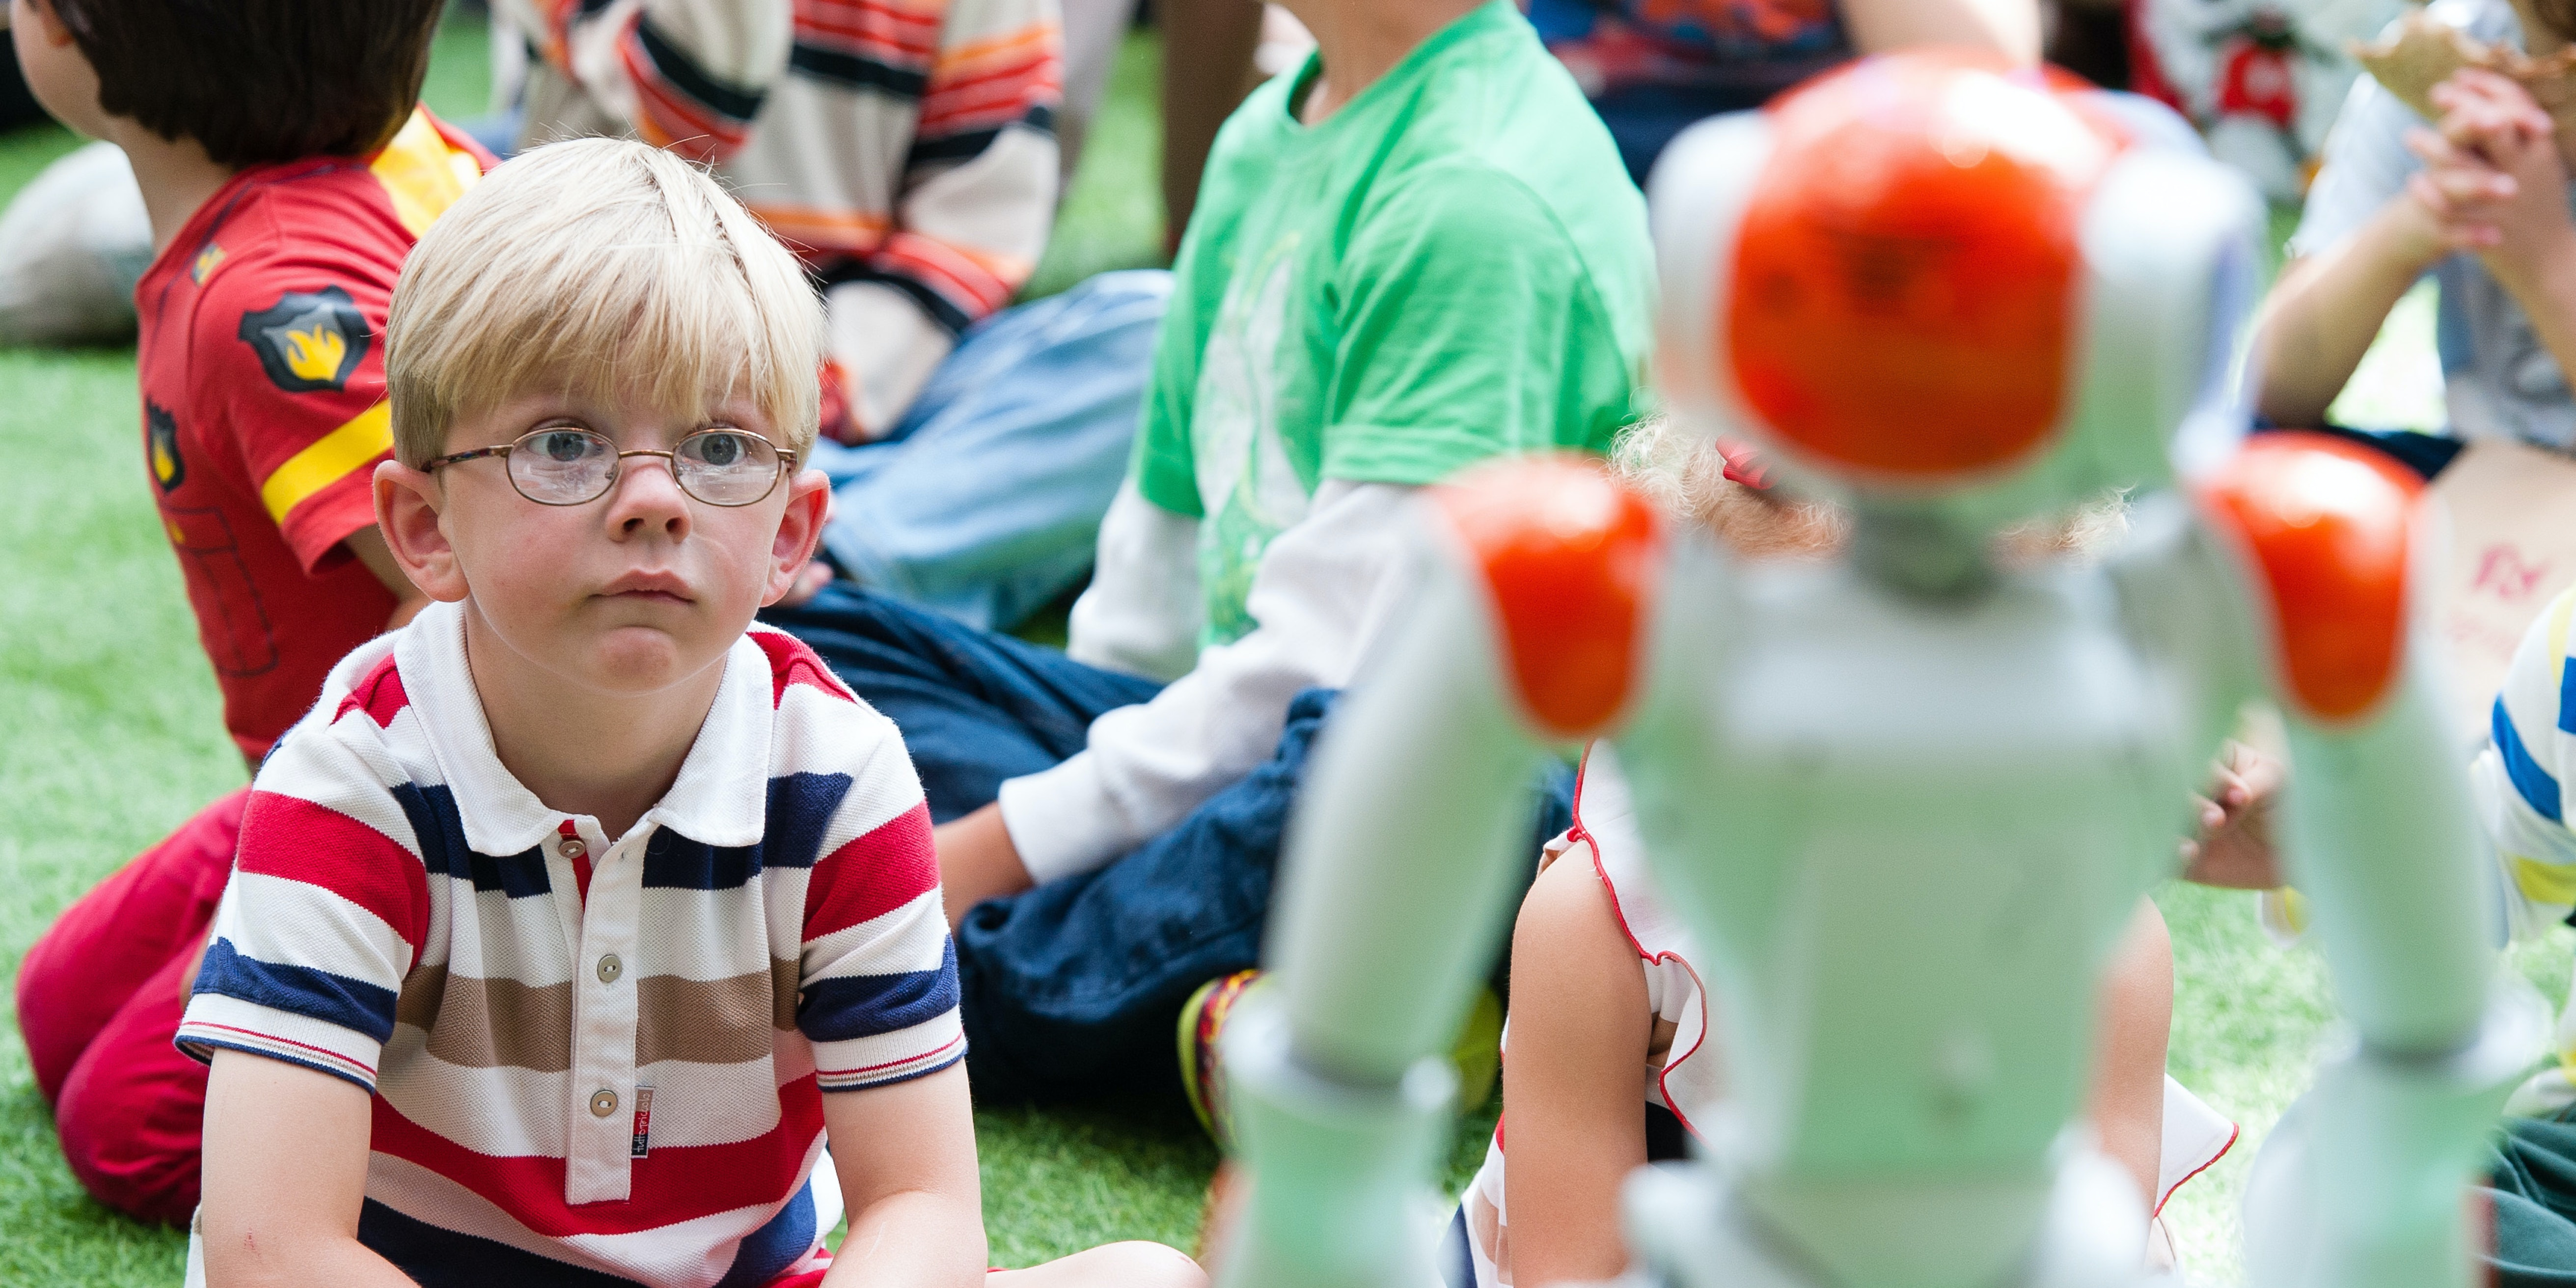 LONDON, ENGLAND - AUGUST 10:  Alexander the friendly robot visits the Indoor Park to interact with children by telling classic fairy tales, singing and dancing at Westfield London on August 10, 2016 in London, England.  (Photo by Jeff Spicer/Getty Images for Westfield)